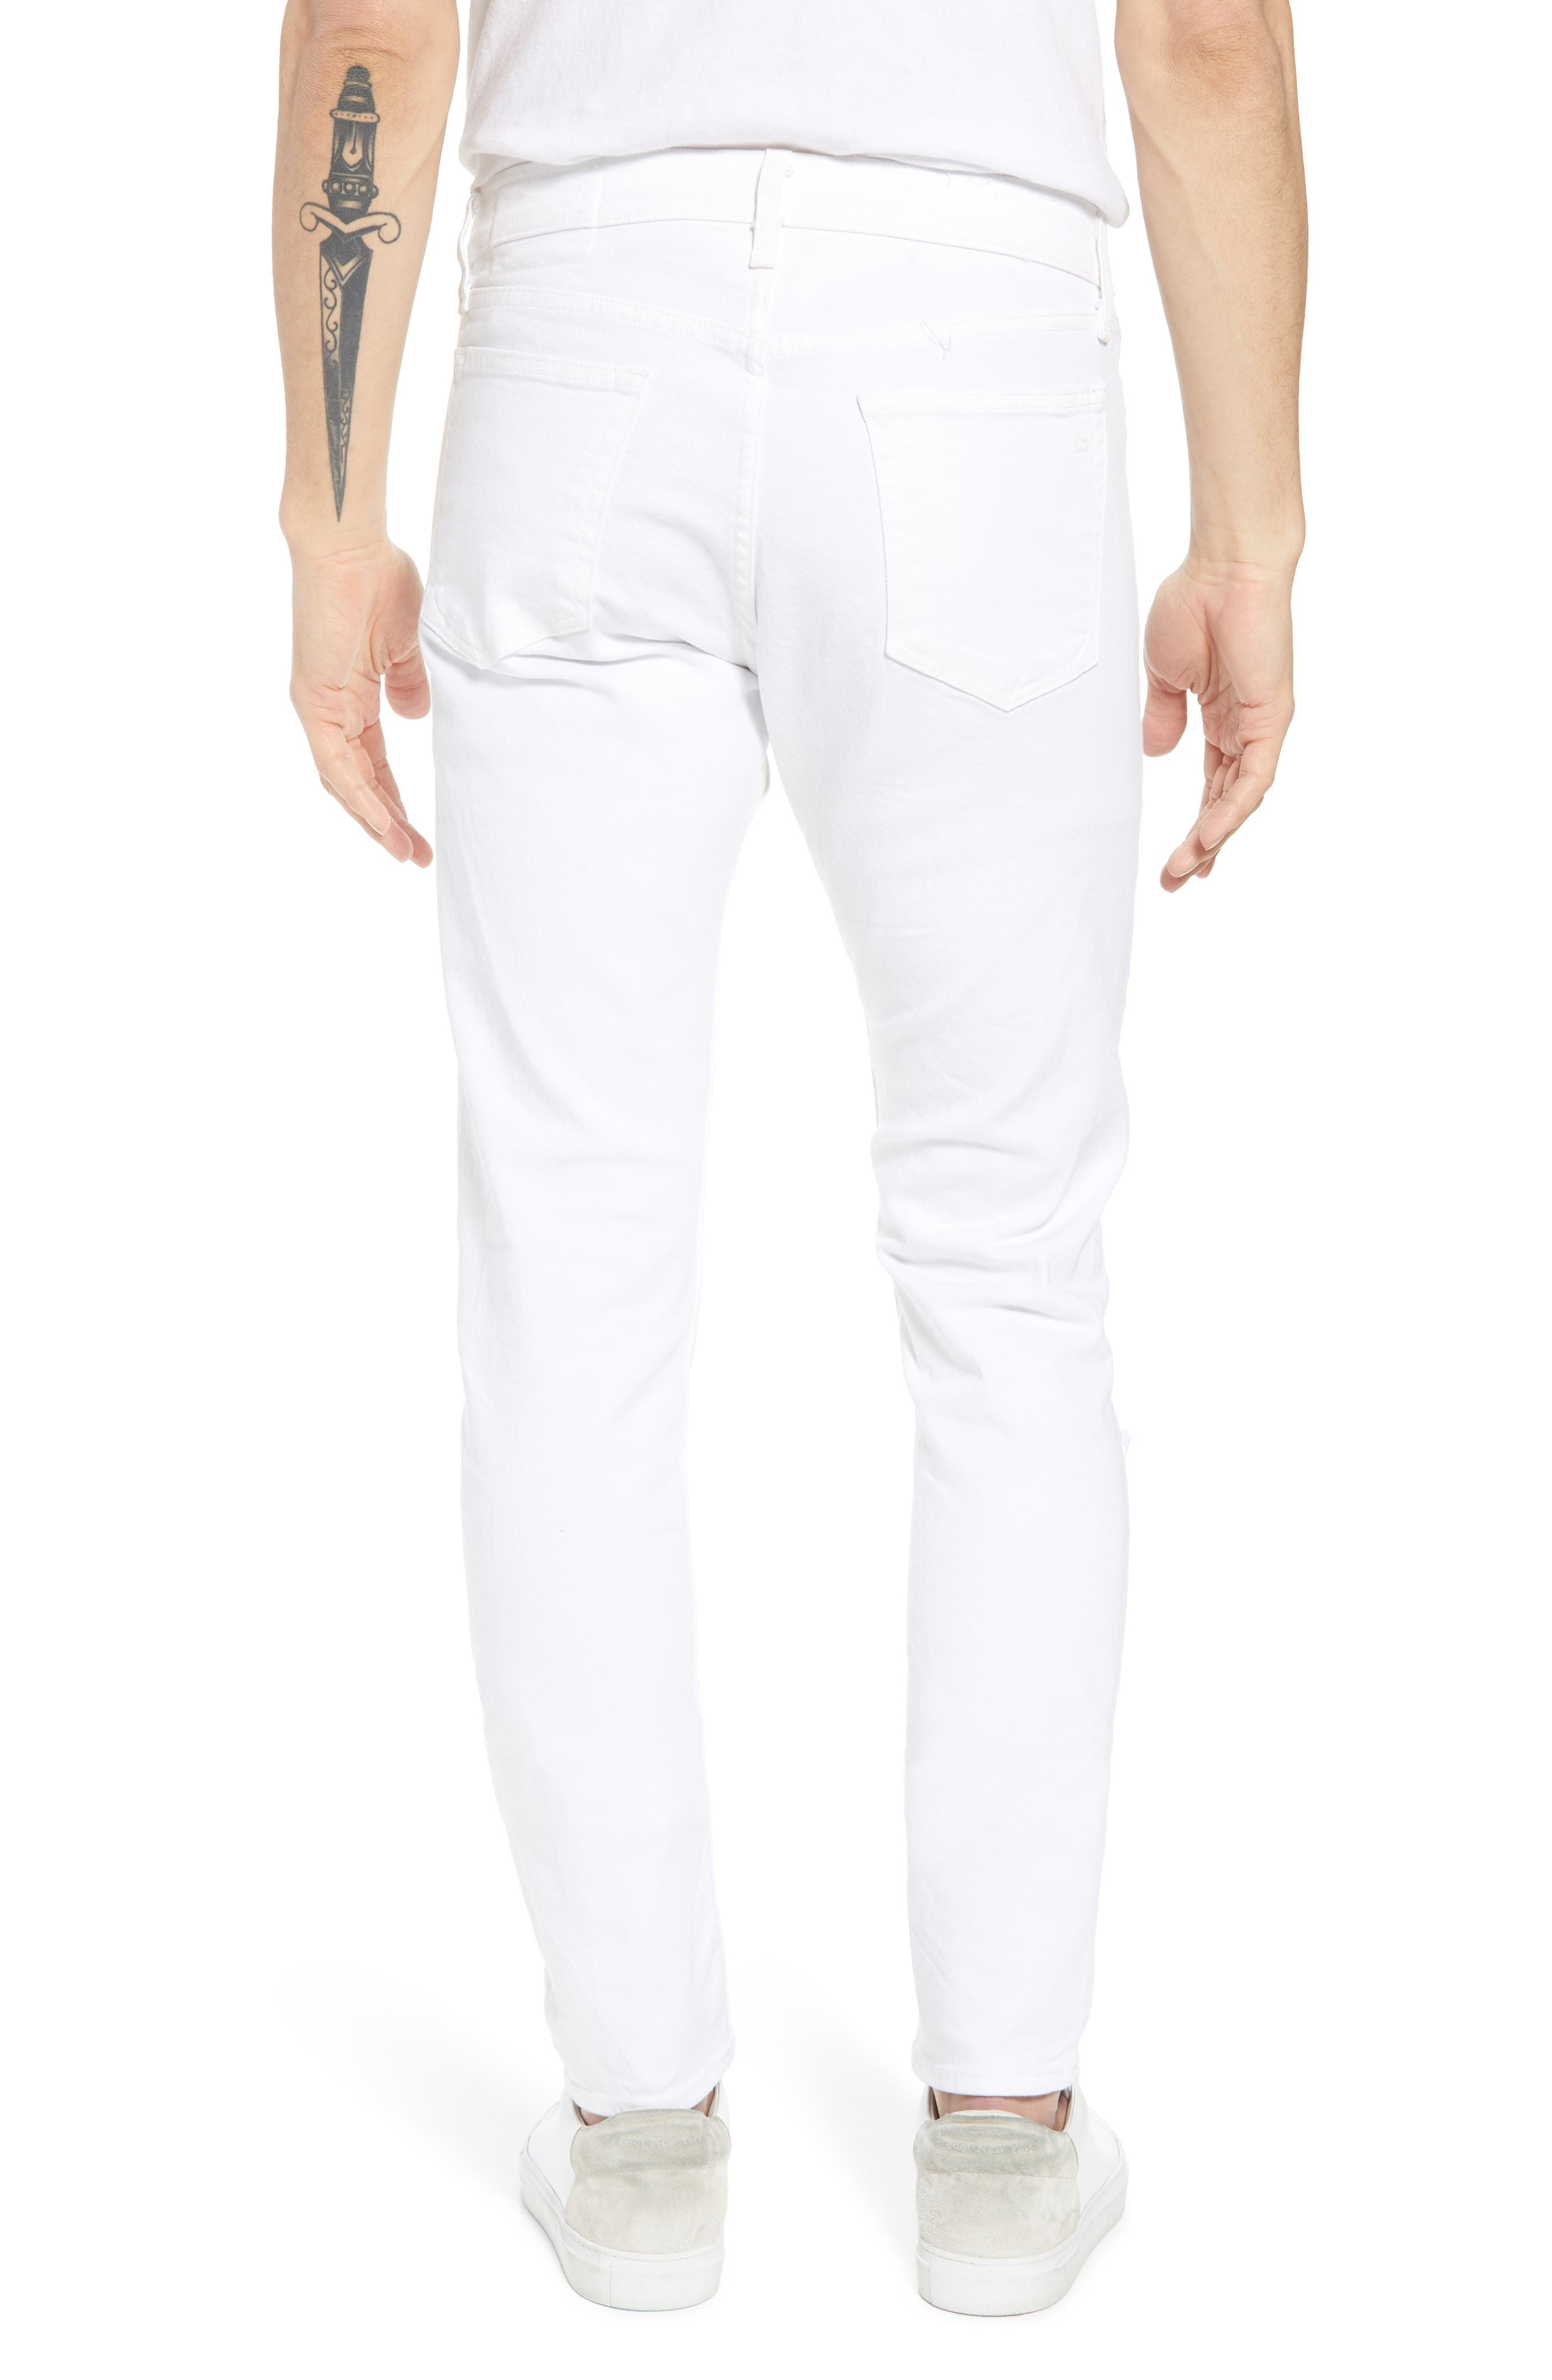 Fit 1 Skinny Fit Jeans,                             Alternate thumbnail 2, color,                             White W/ Holes